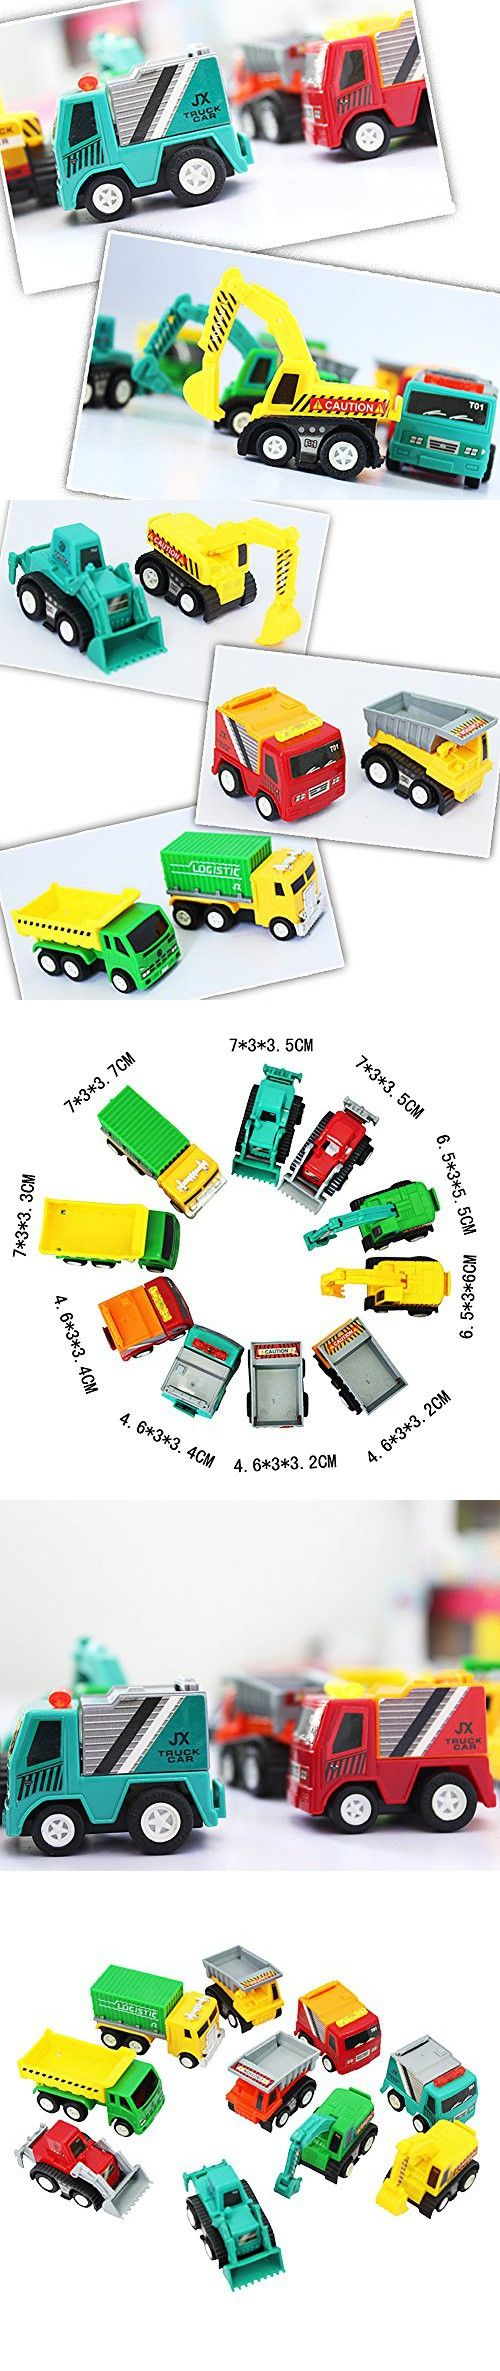 6MILES 10 Pcs Mini Push Pull Back Car Model Kit Set Plastic Play Vehicle Construction Excavator Dump Truck Playset Preschool Learning for Children Toddlers for Kid Baby Christmas Birthday Gift Set